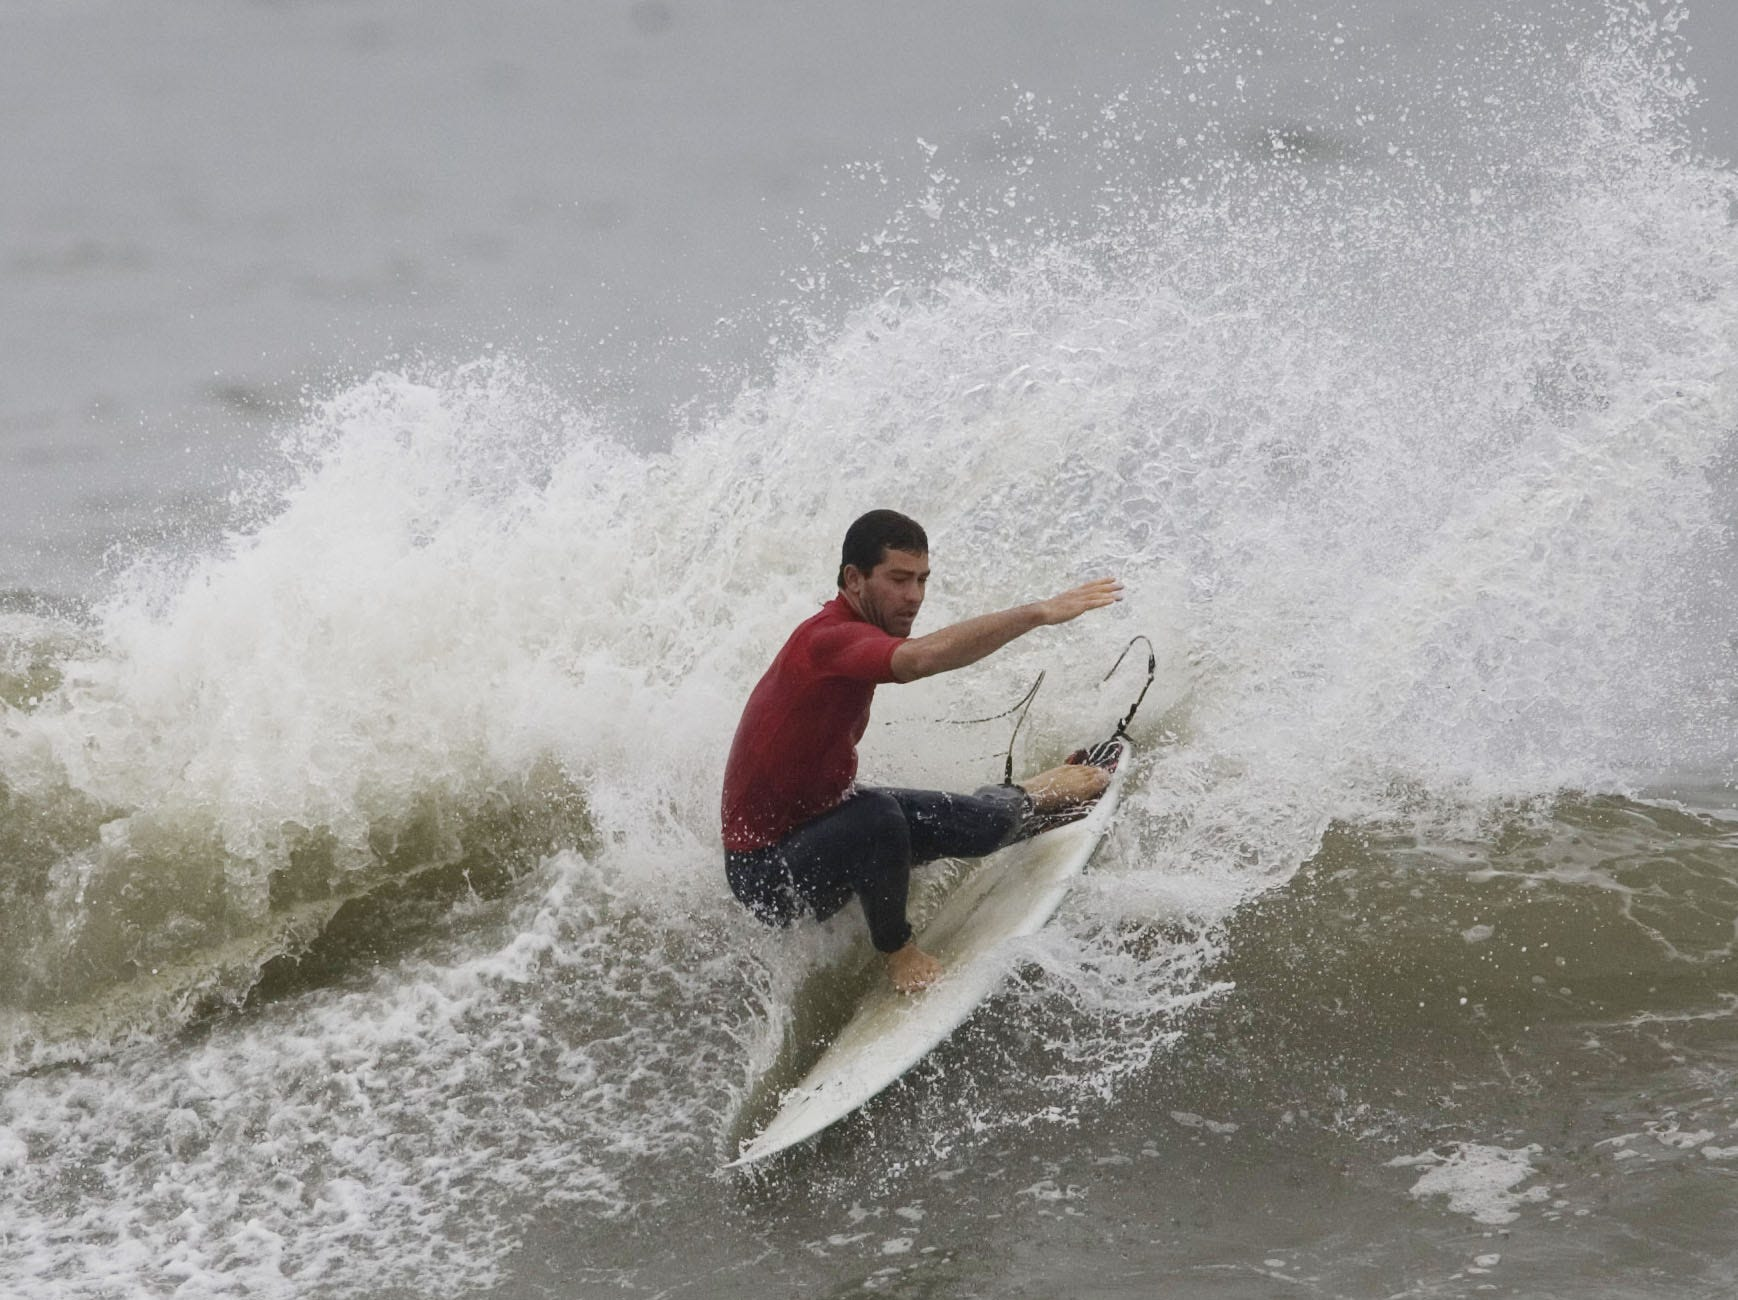 Early heats of day one competition of the Foster's Belmar Pro & Fins Fast Jr. Pro take place at the 16th Ave beach in Belmar on Saturday, September 12, 2009. Royce Weber of Surf City, Long Beach Island, competes in the mens division.  Doug Hood/ Asbury Park Press- Belmar, NJ- 09.12.09 (#5875)